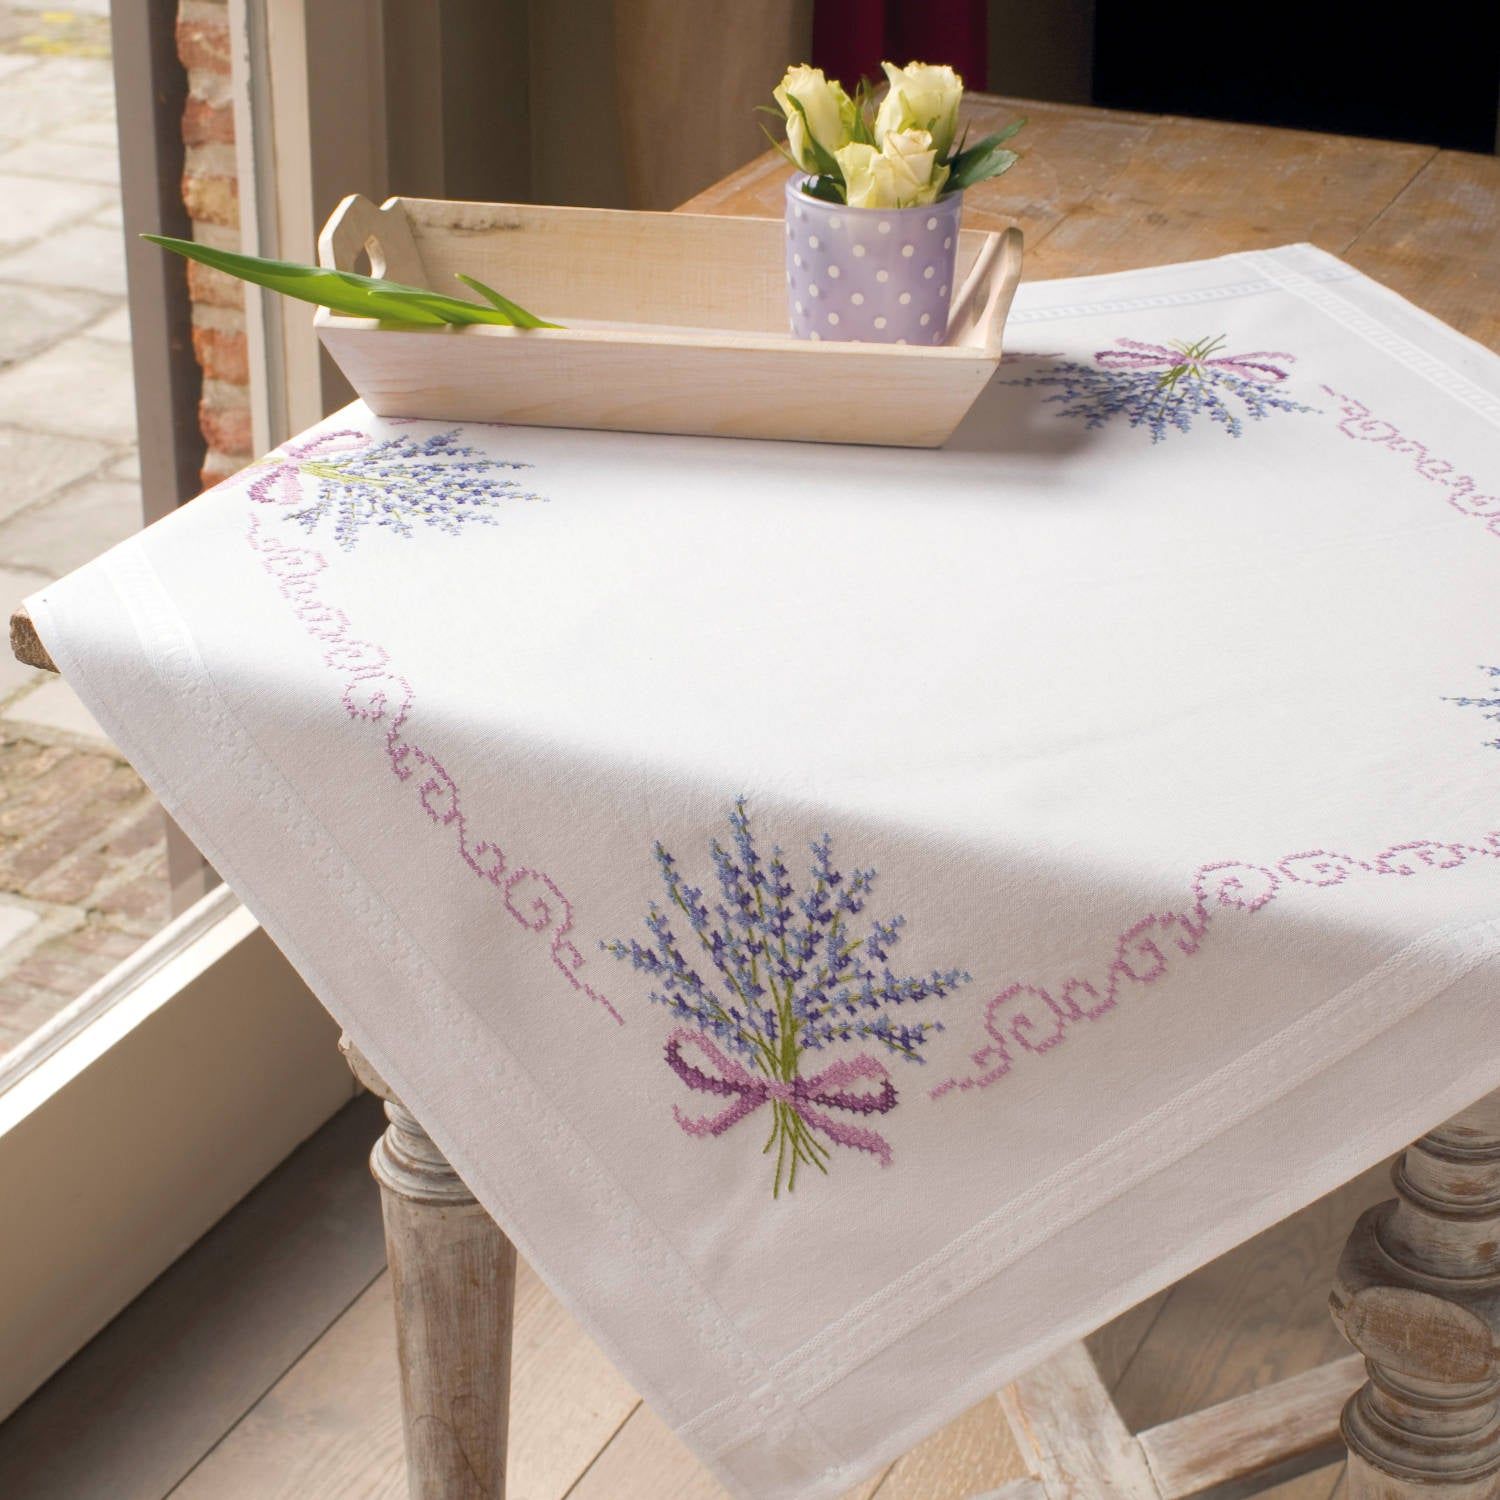 Lavender Bouquet Tablecloth <br />Embroidery Kit